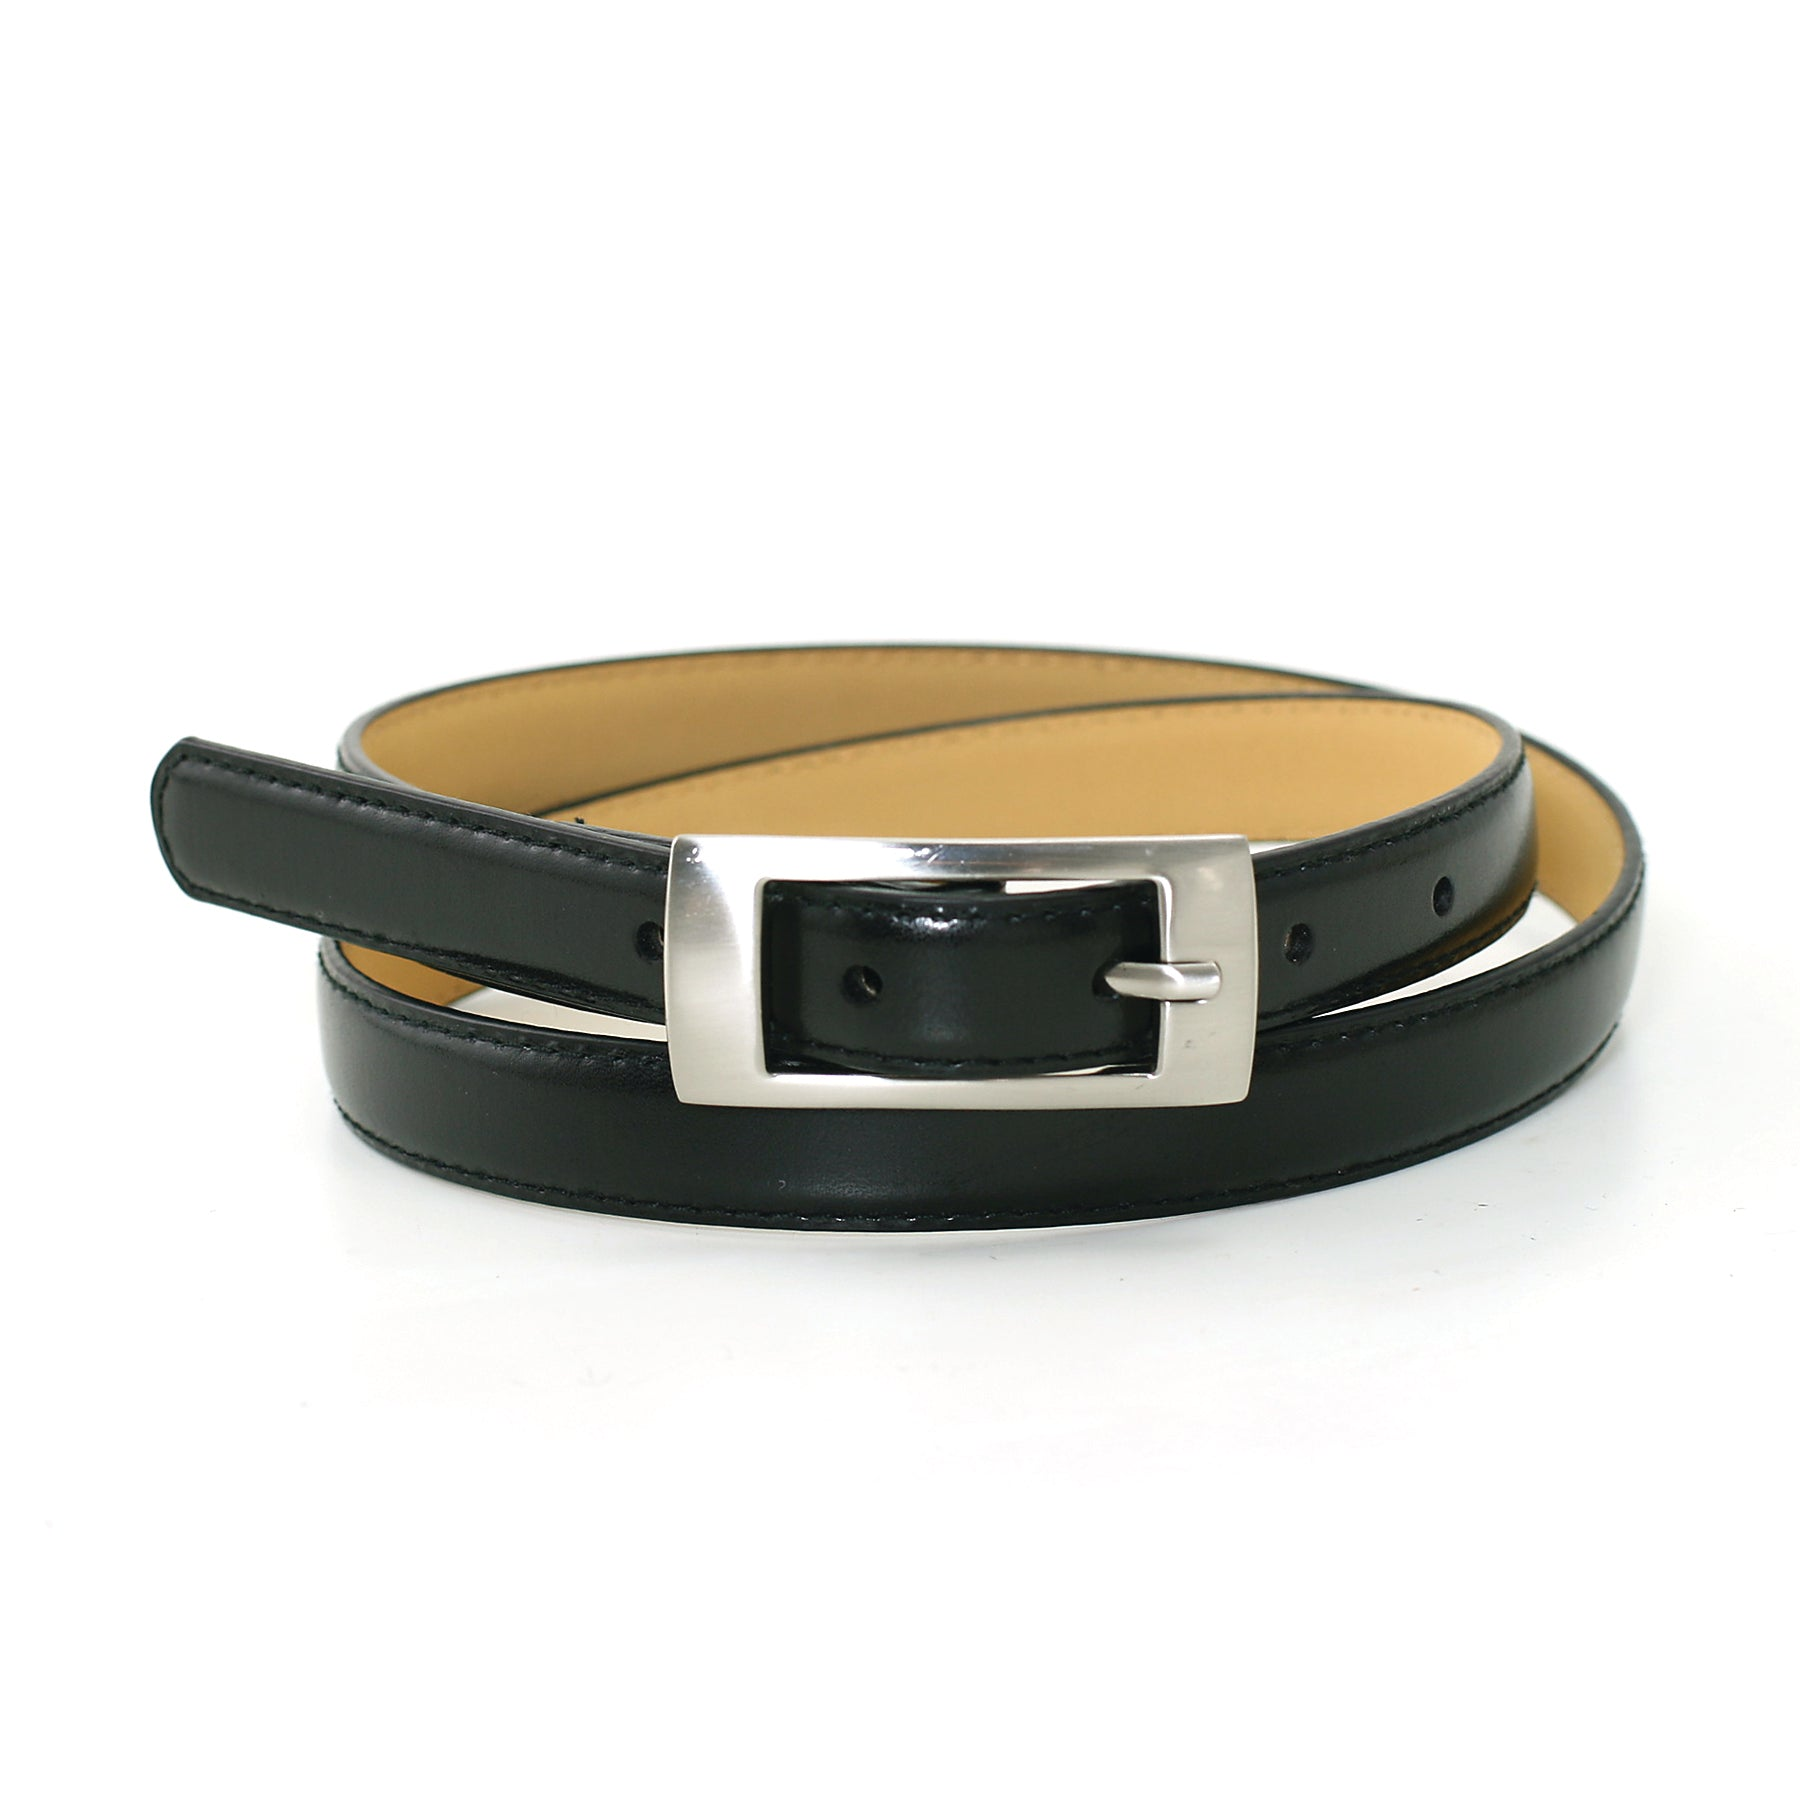 Women's 3/4 Inches Width Brass Belt Buckle Fashion Leatherette Belt front view